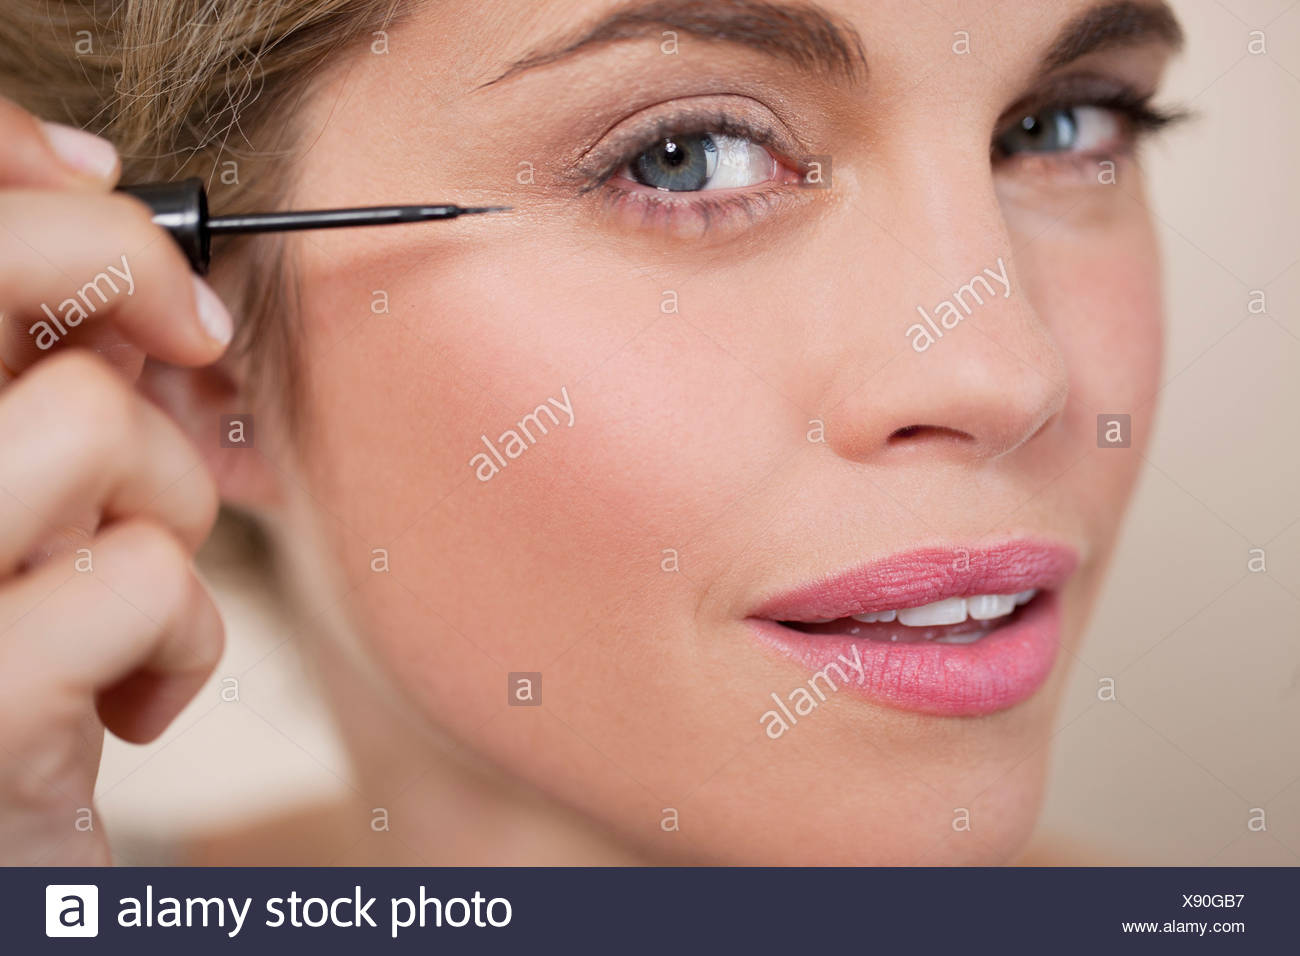 2bed84527 A young woman applying liquid eye liner, close up - Stock Image